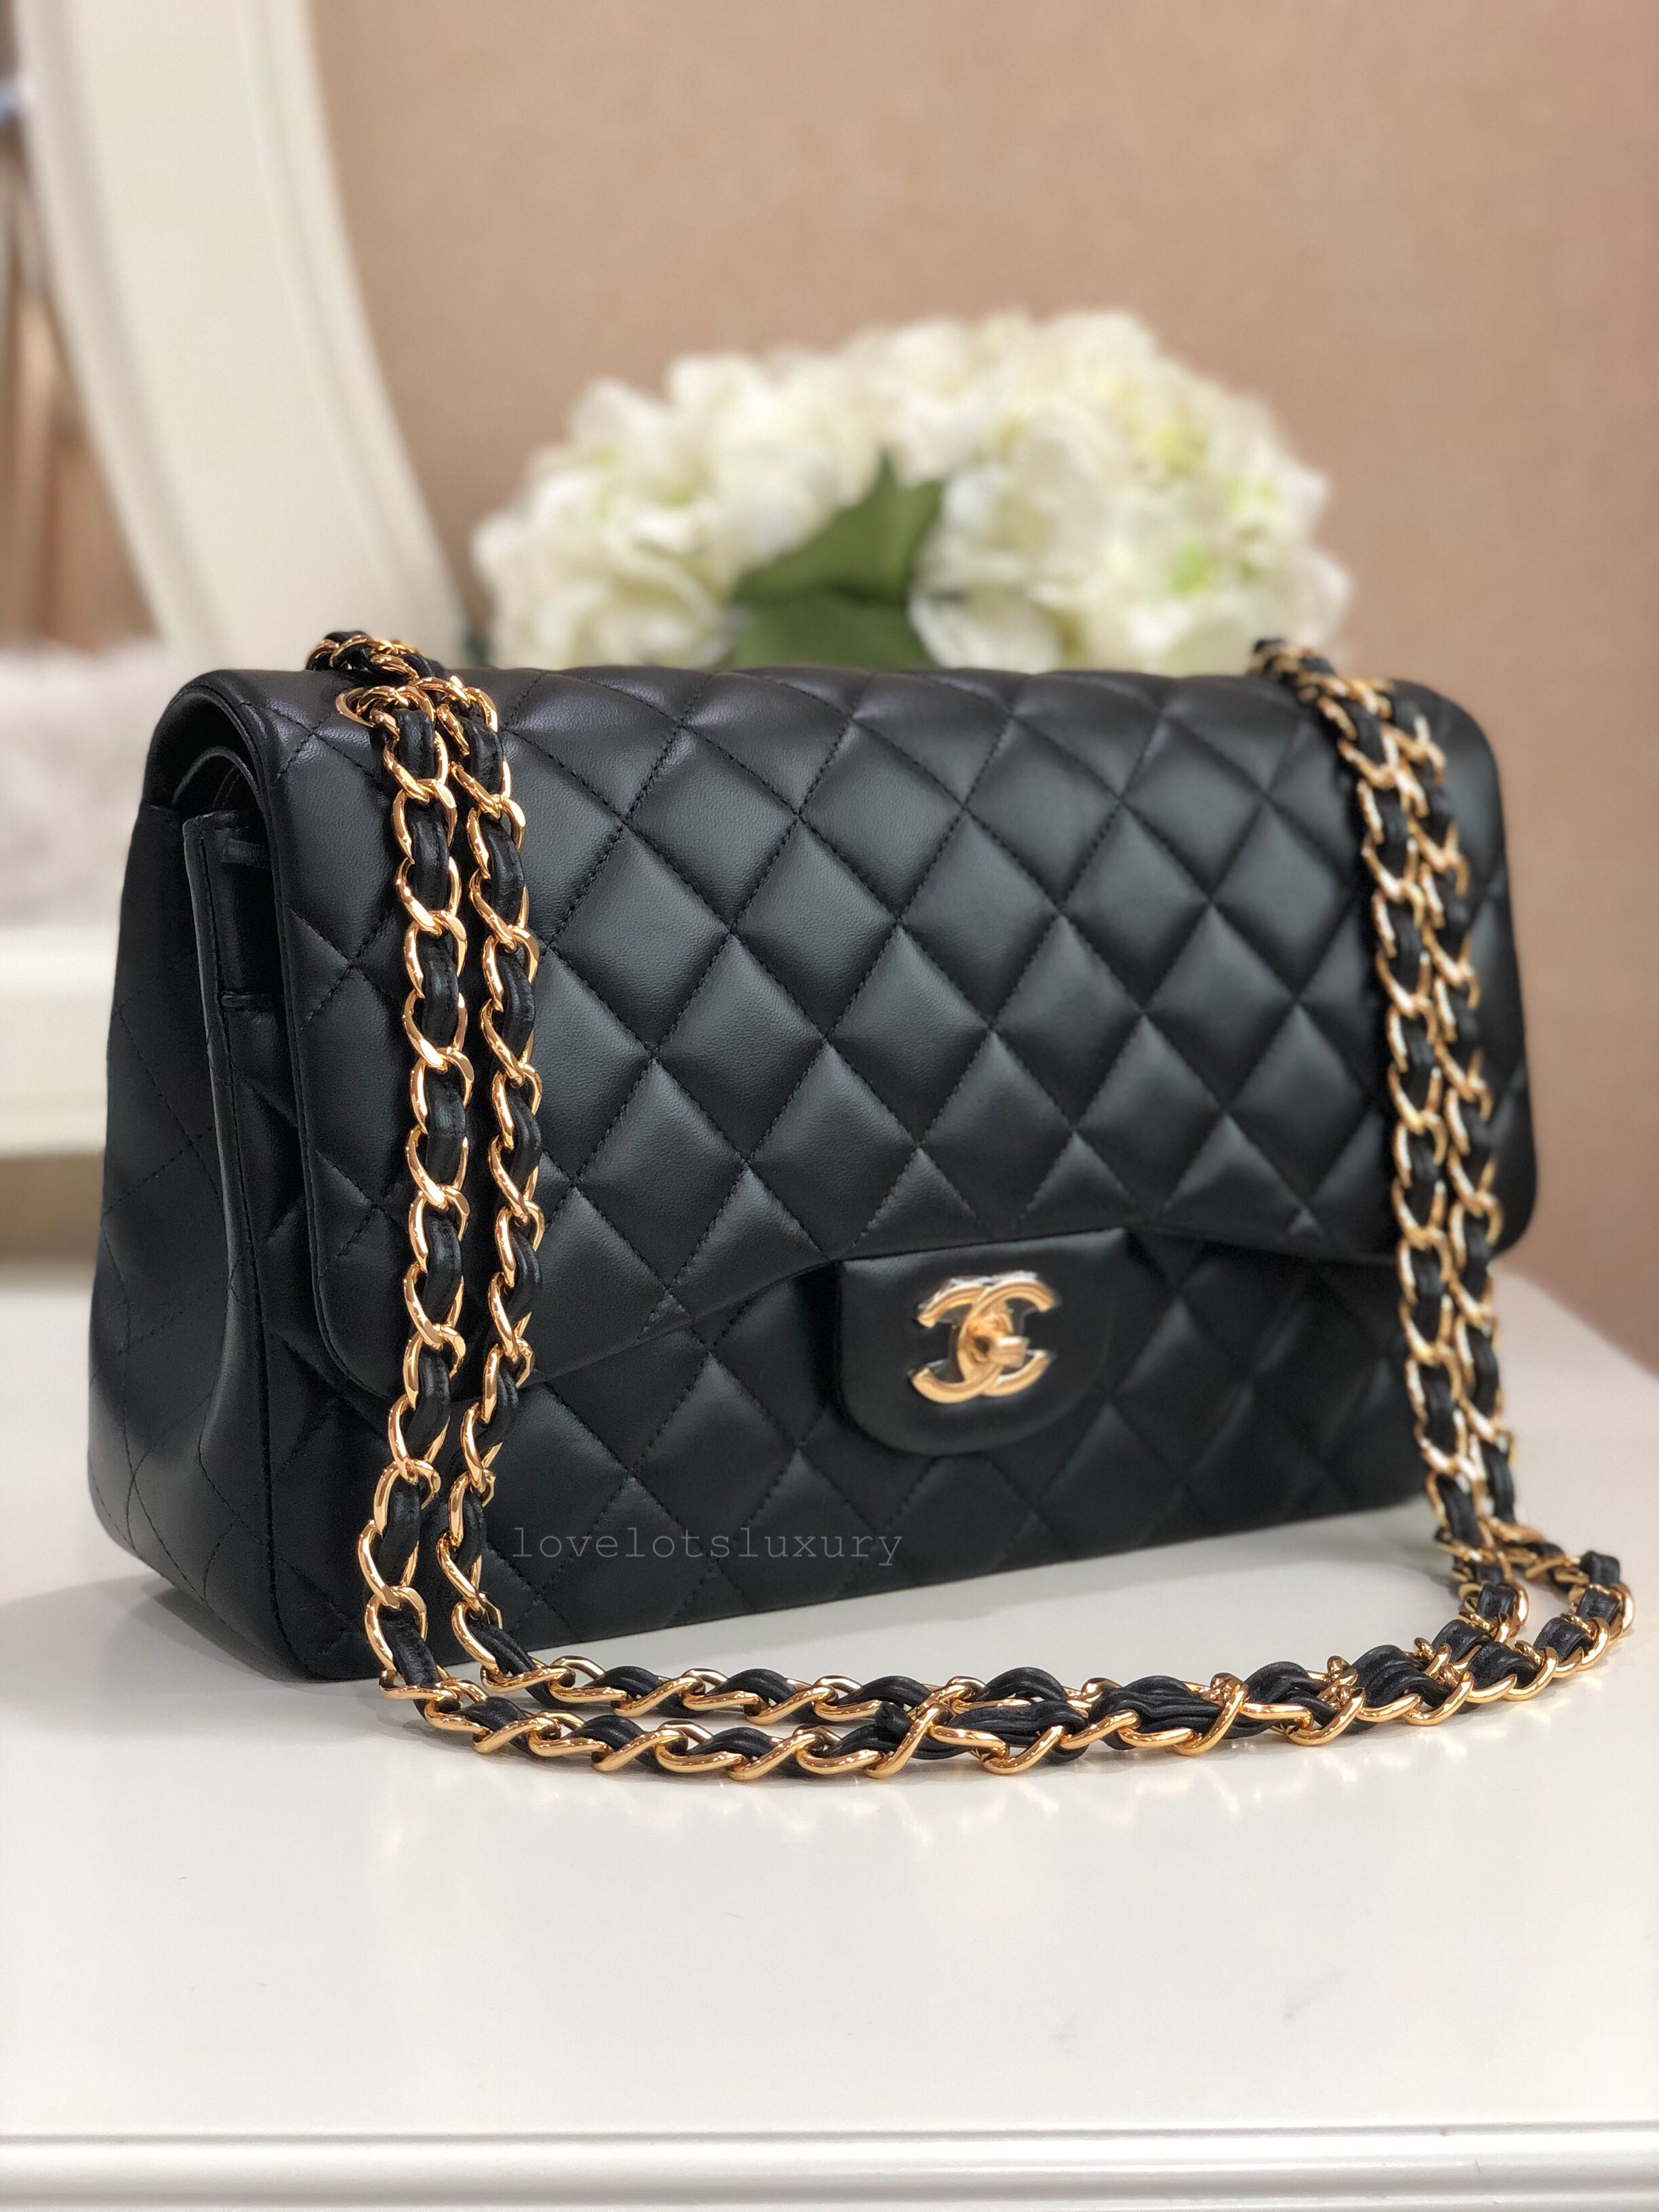 d0d41d9ce12e 24 series New Unworn Chanel Classic Double Flap Jumbo Black Lambskin GHW,  Luxury, Bags & Wallets, Handbags on Carousell